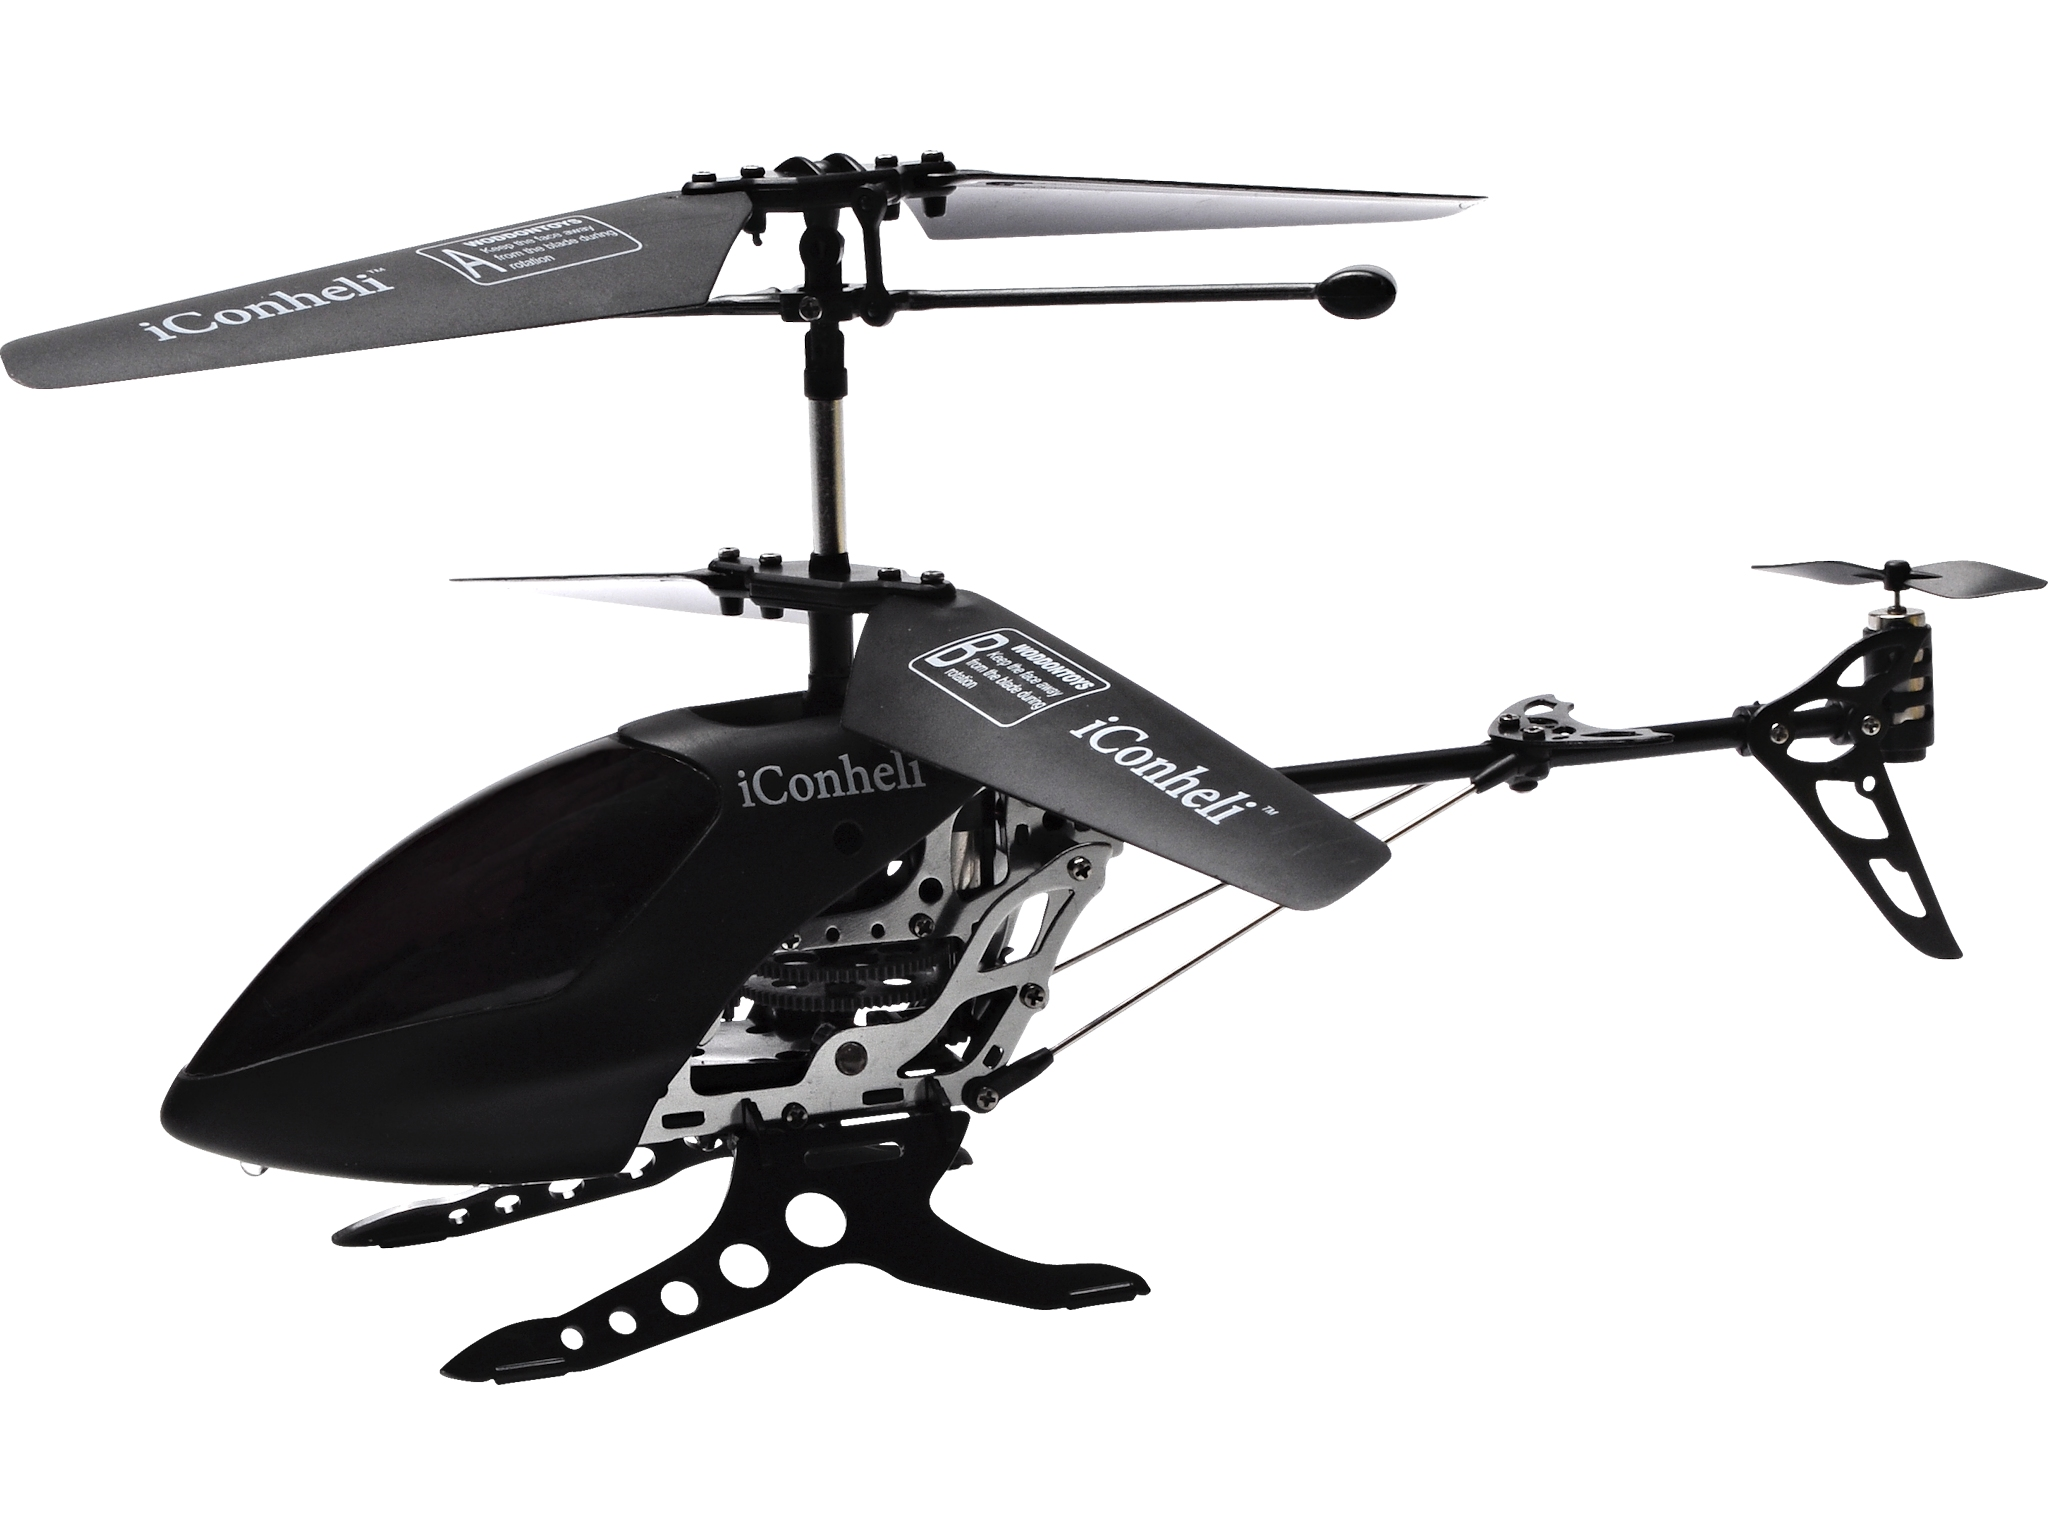 iConheli Bluetooth Helicopter